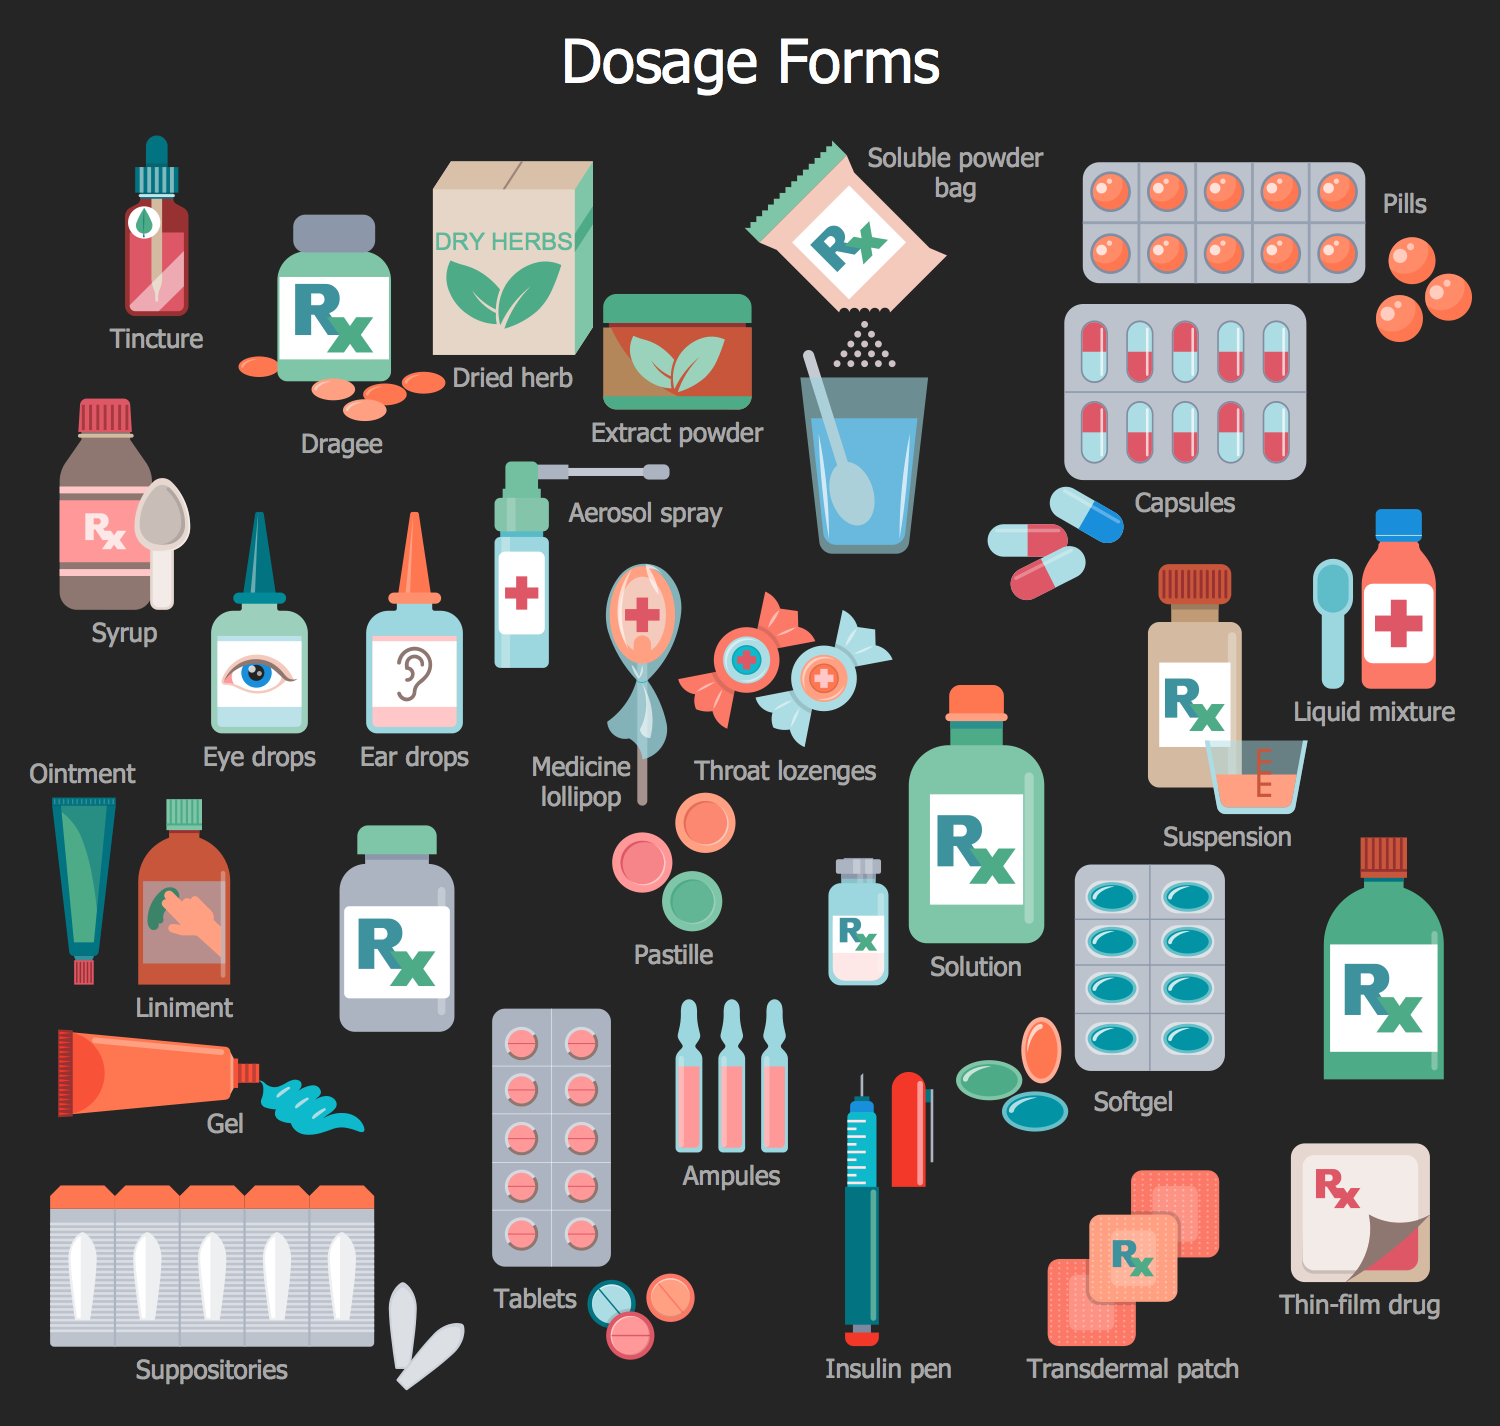 Pharmacy Clipart - Dosage Forms